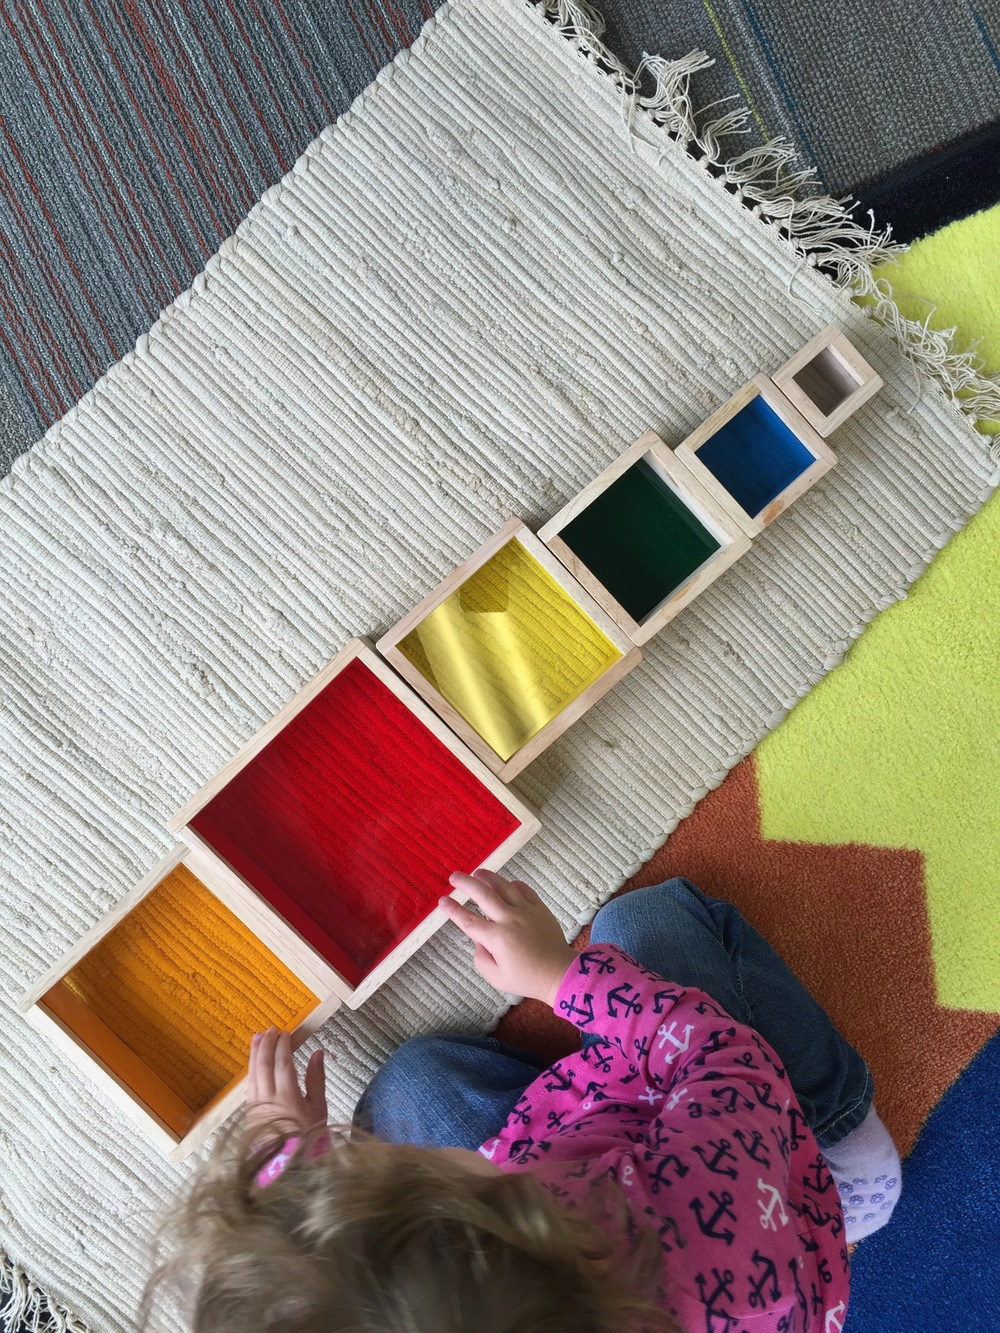 This rainbow tower has been getting a lot of use since I bought it weeks ago. There are so many ways to use it - stacking, arranging, peeking through the colored plexi... or just good old fashioned pretend play.